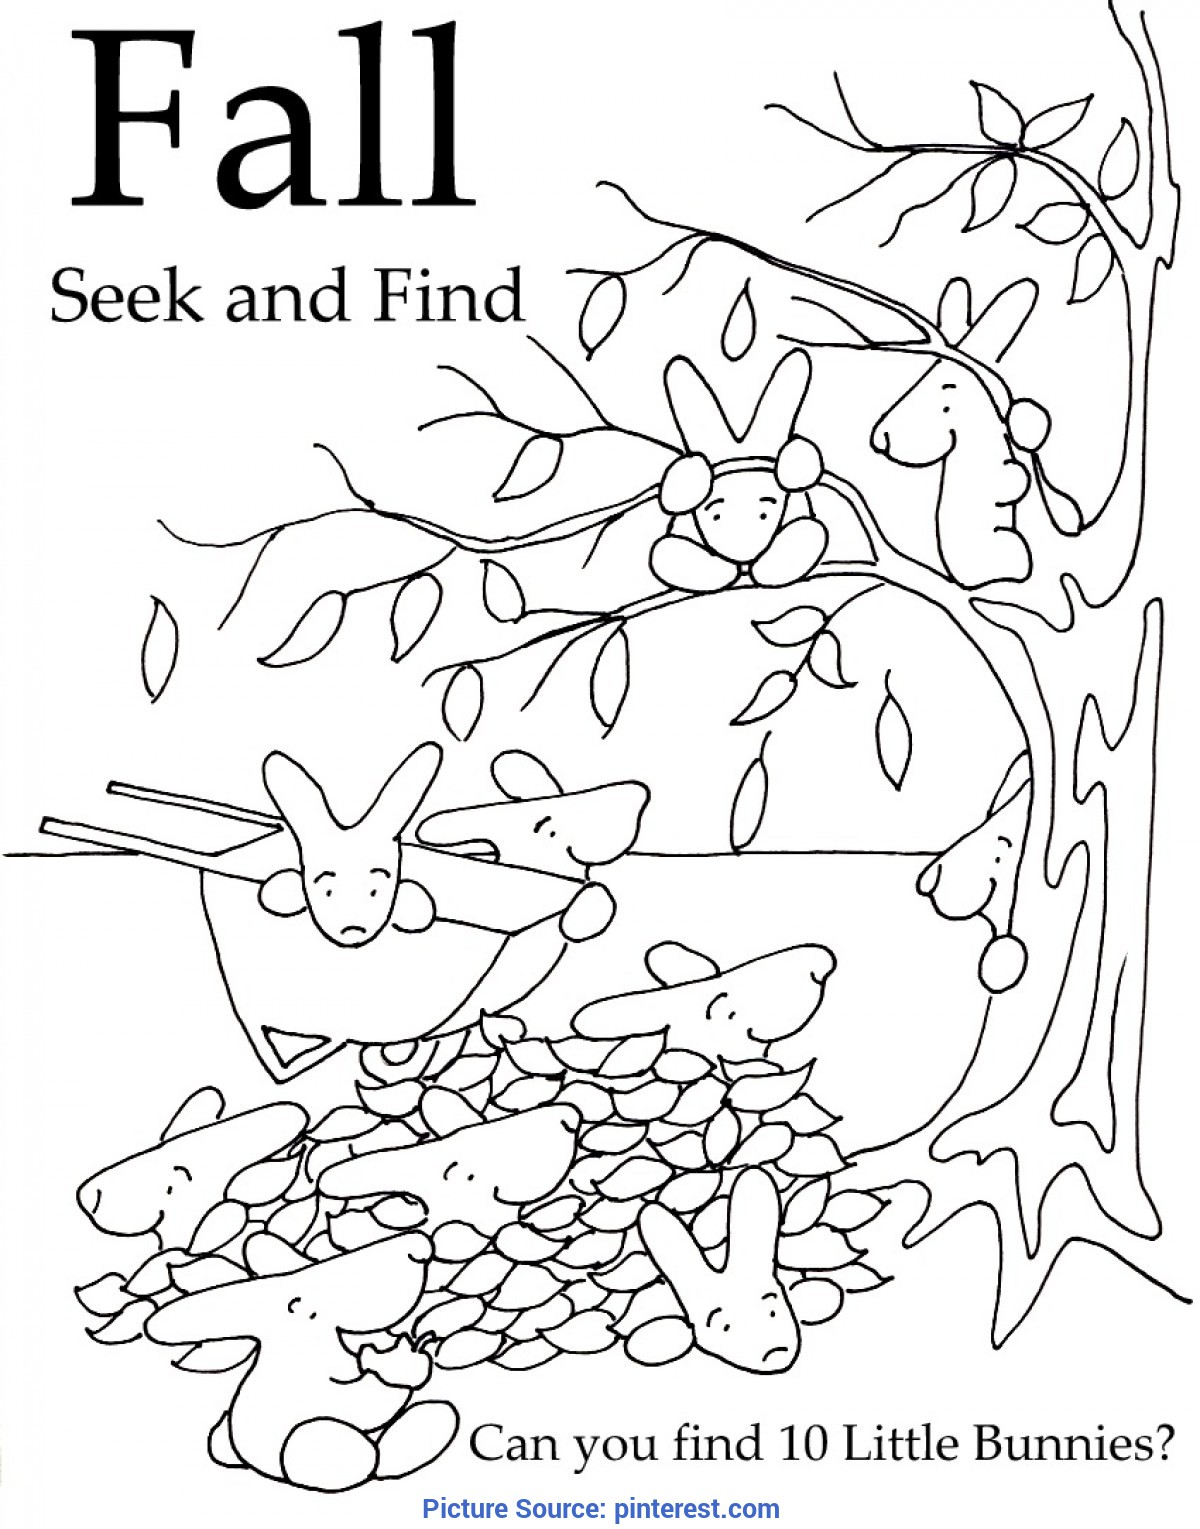 Complex First Day Of Fall Activities For Preschool Seek And Finds | Free Printables, School And Free Presc